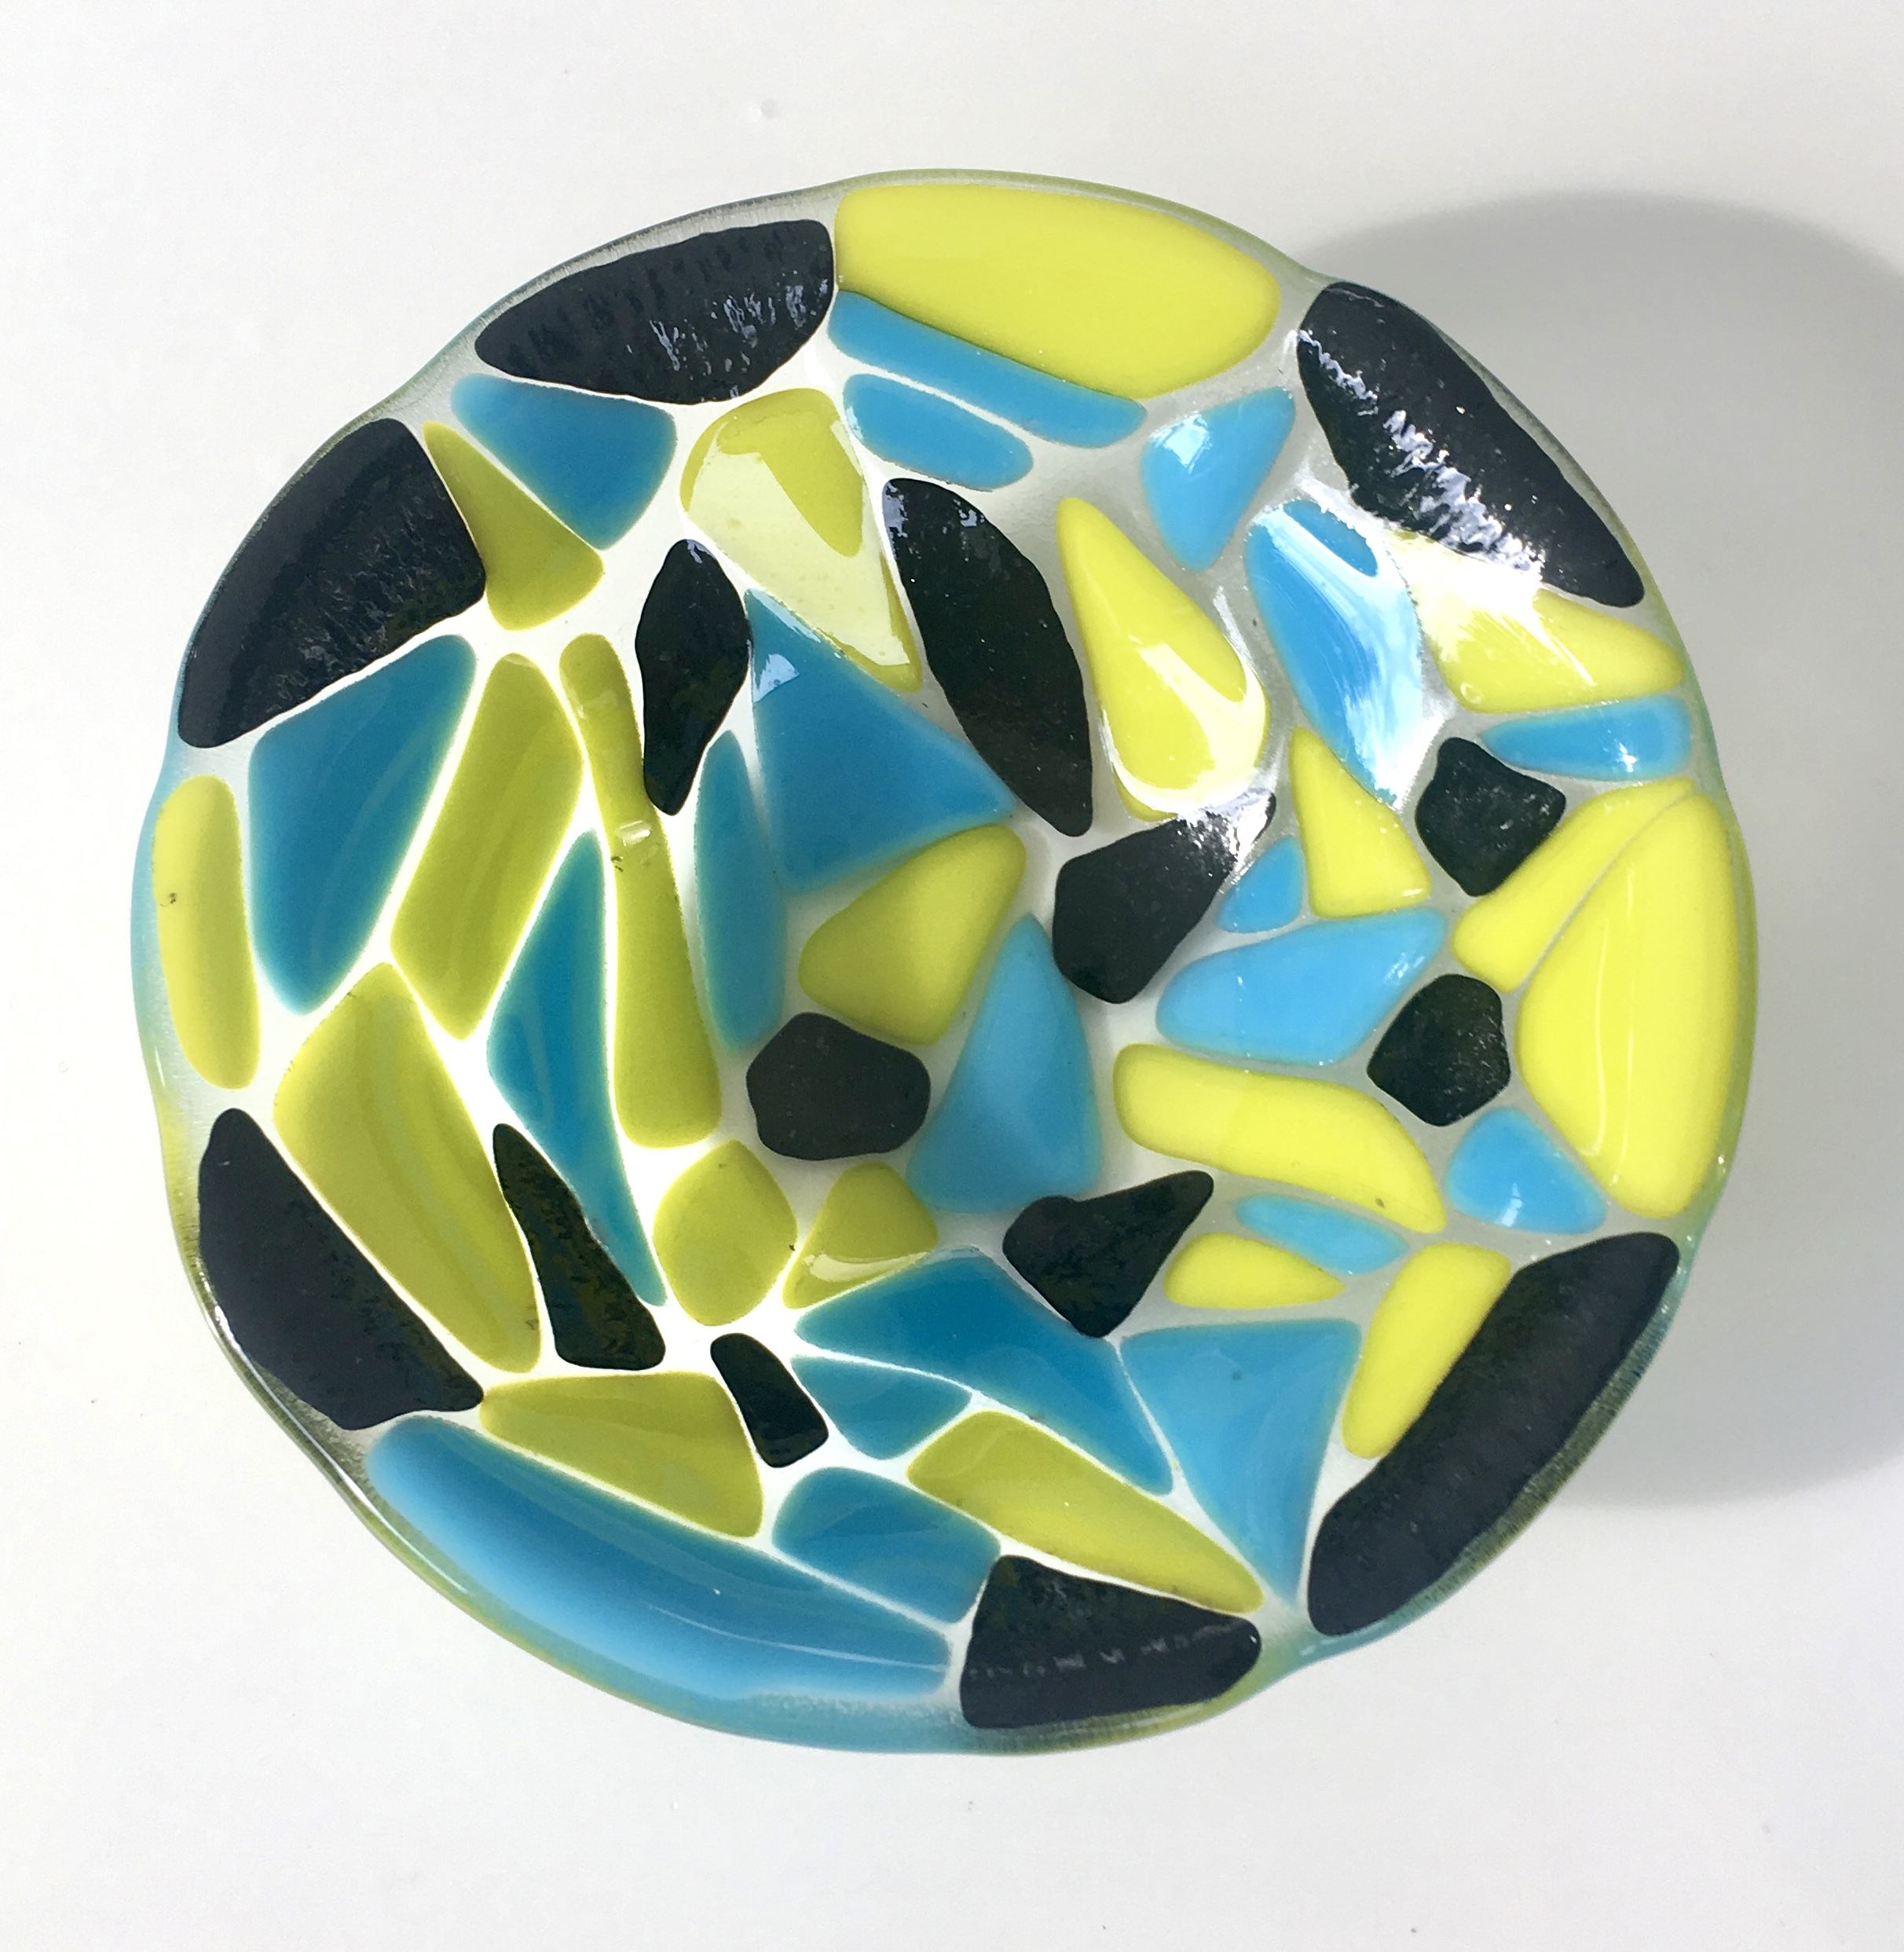 Little shards of lemongrass, sparkly black and mariner blue are quite striking on this small bowl.